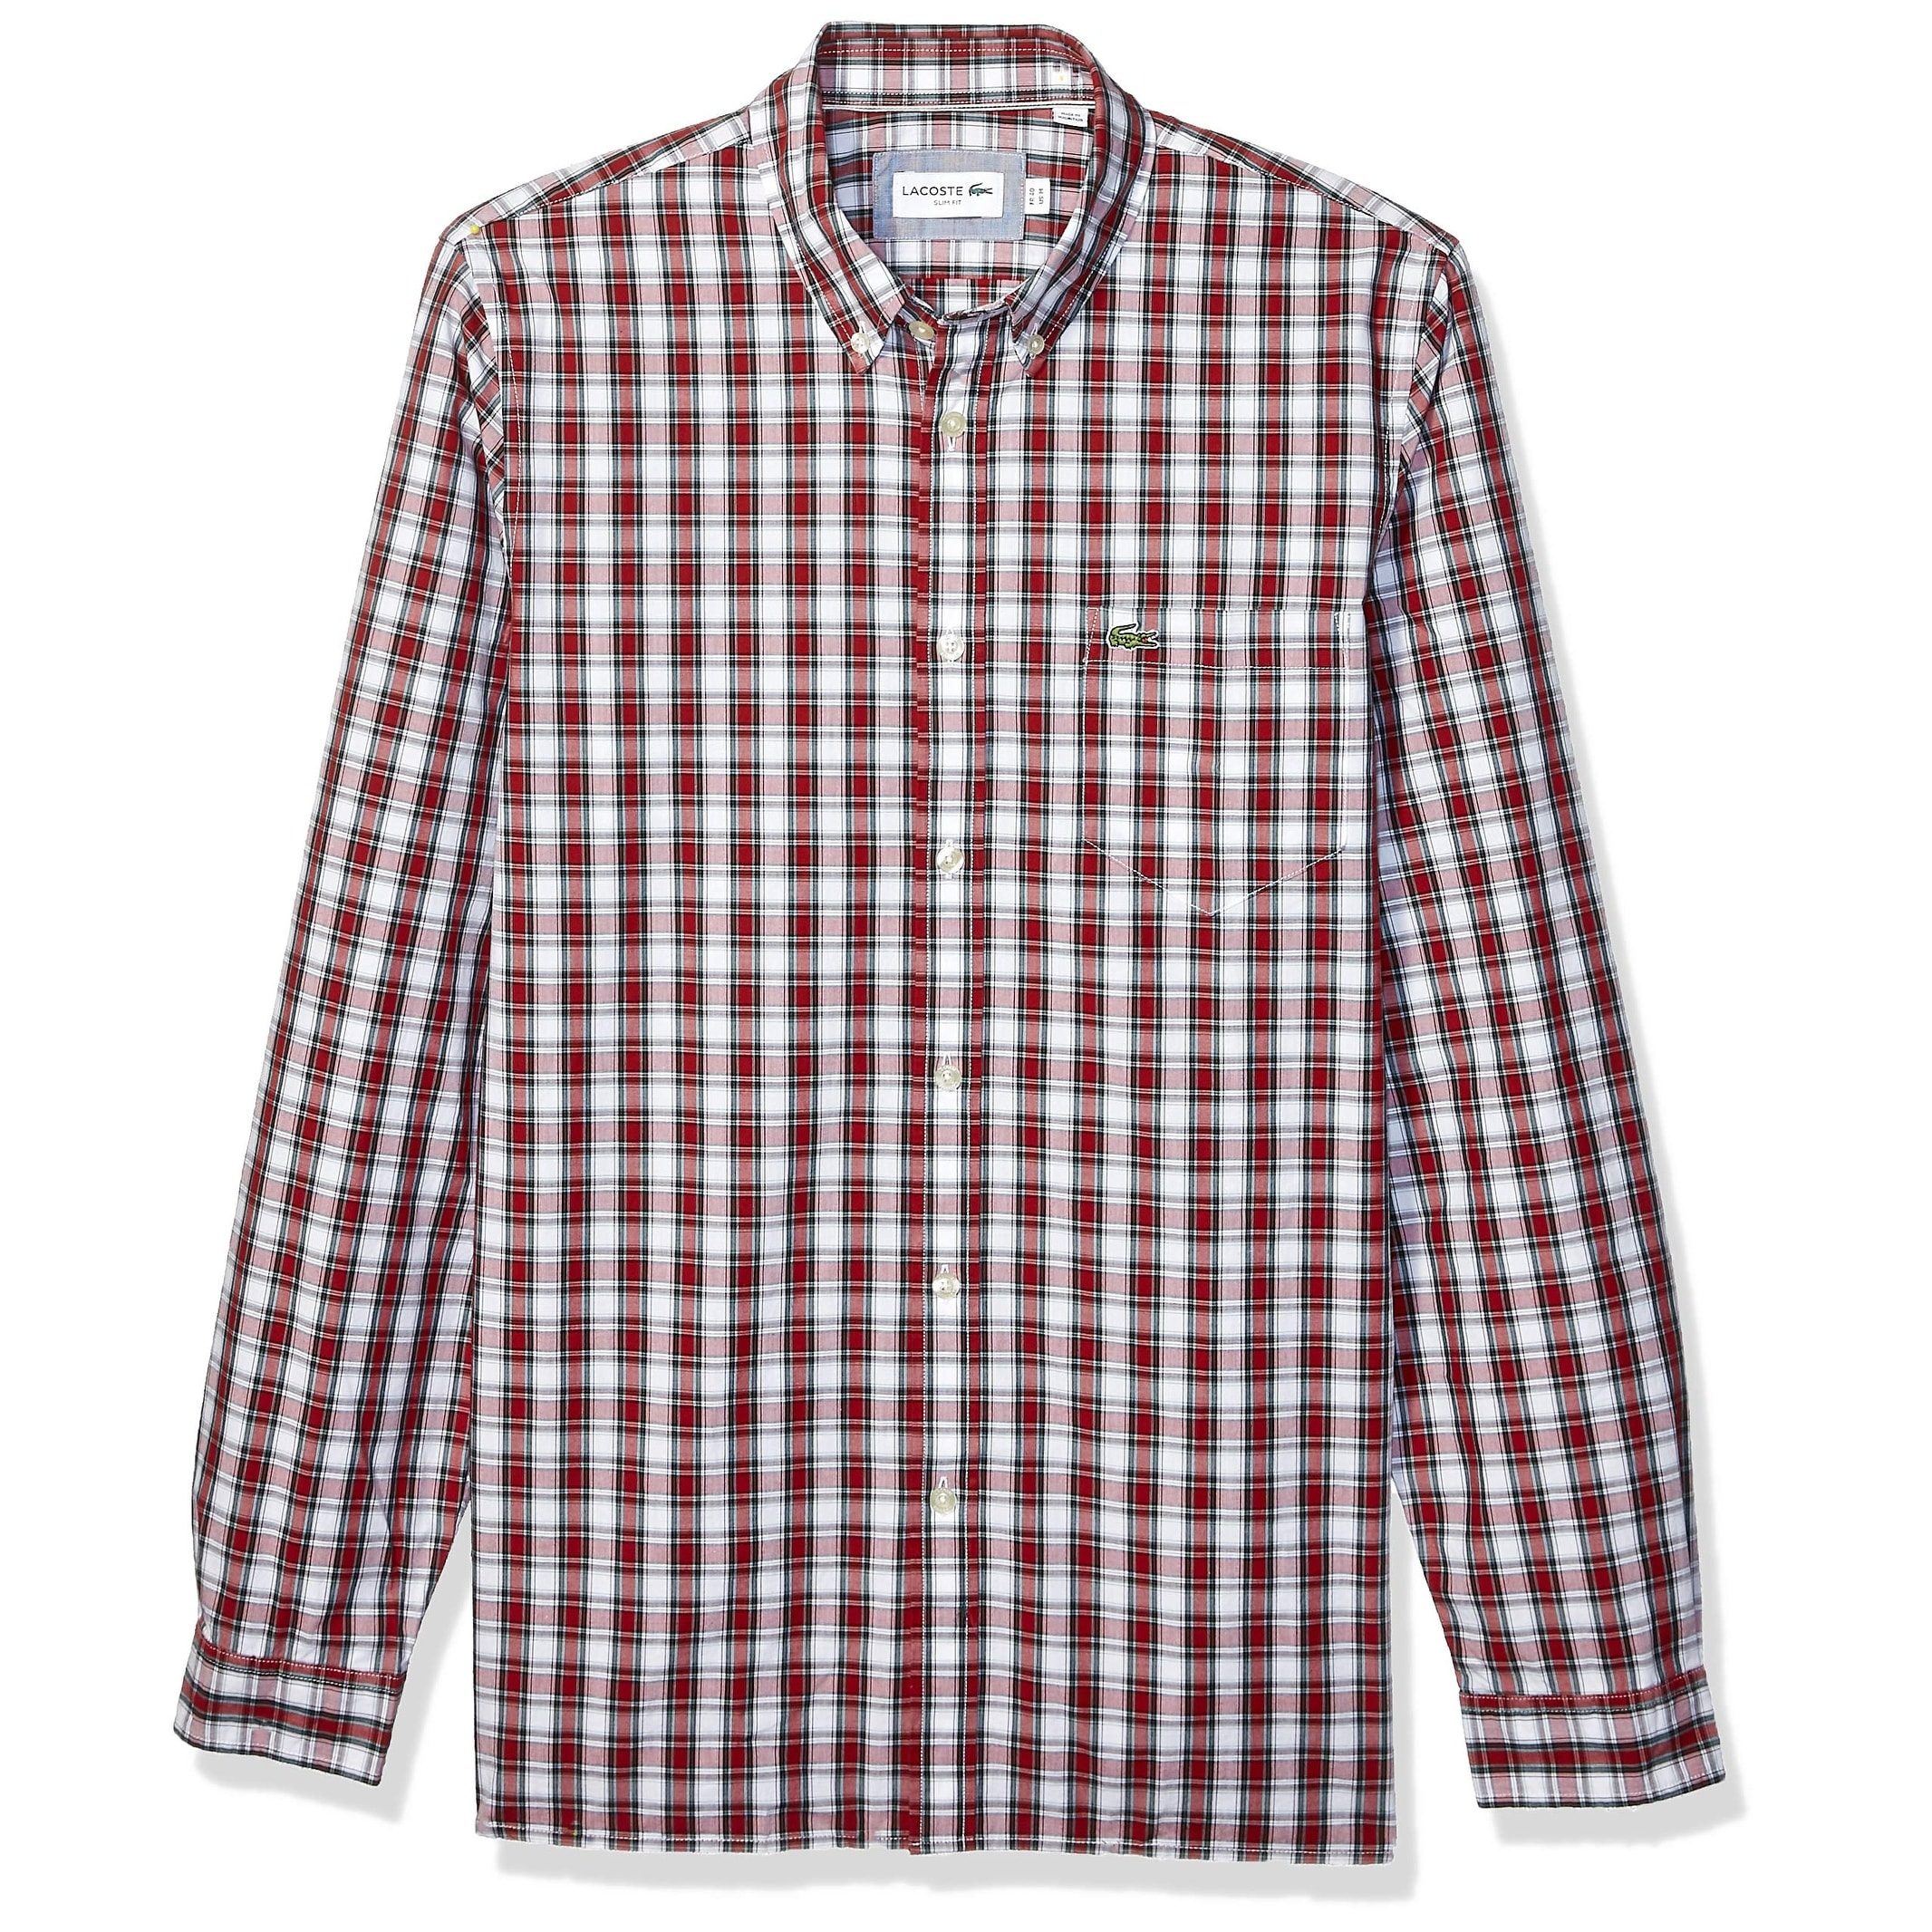 Lacoste Mens Casual Shirt Burgundy Red